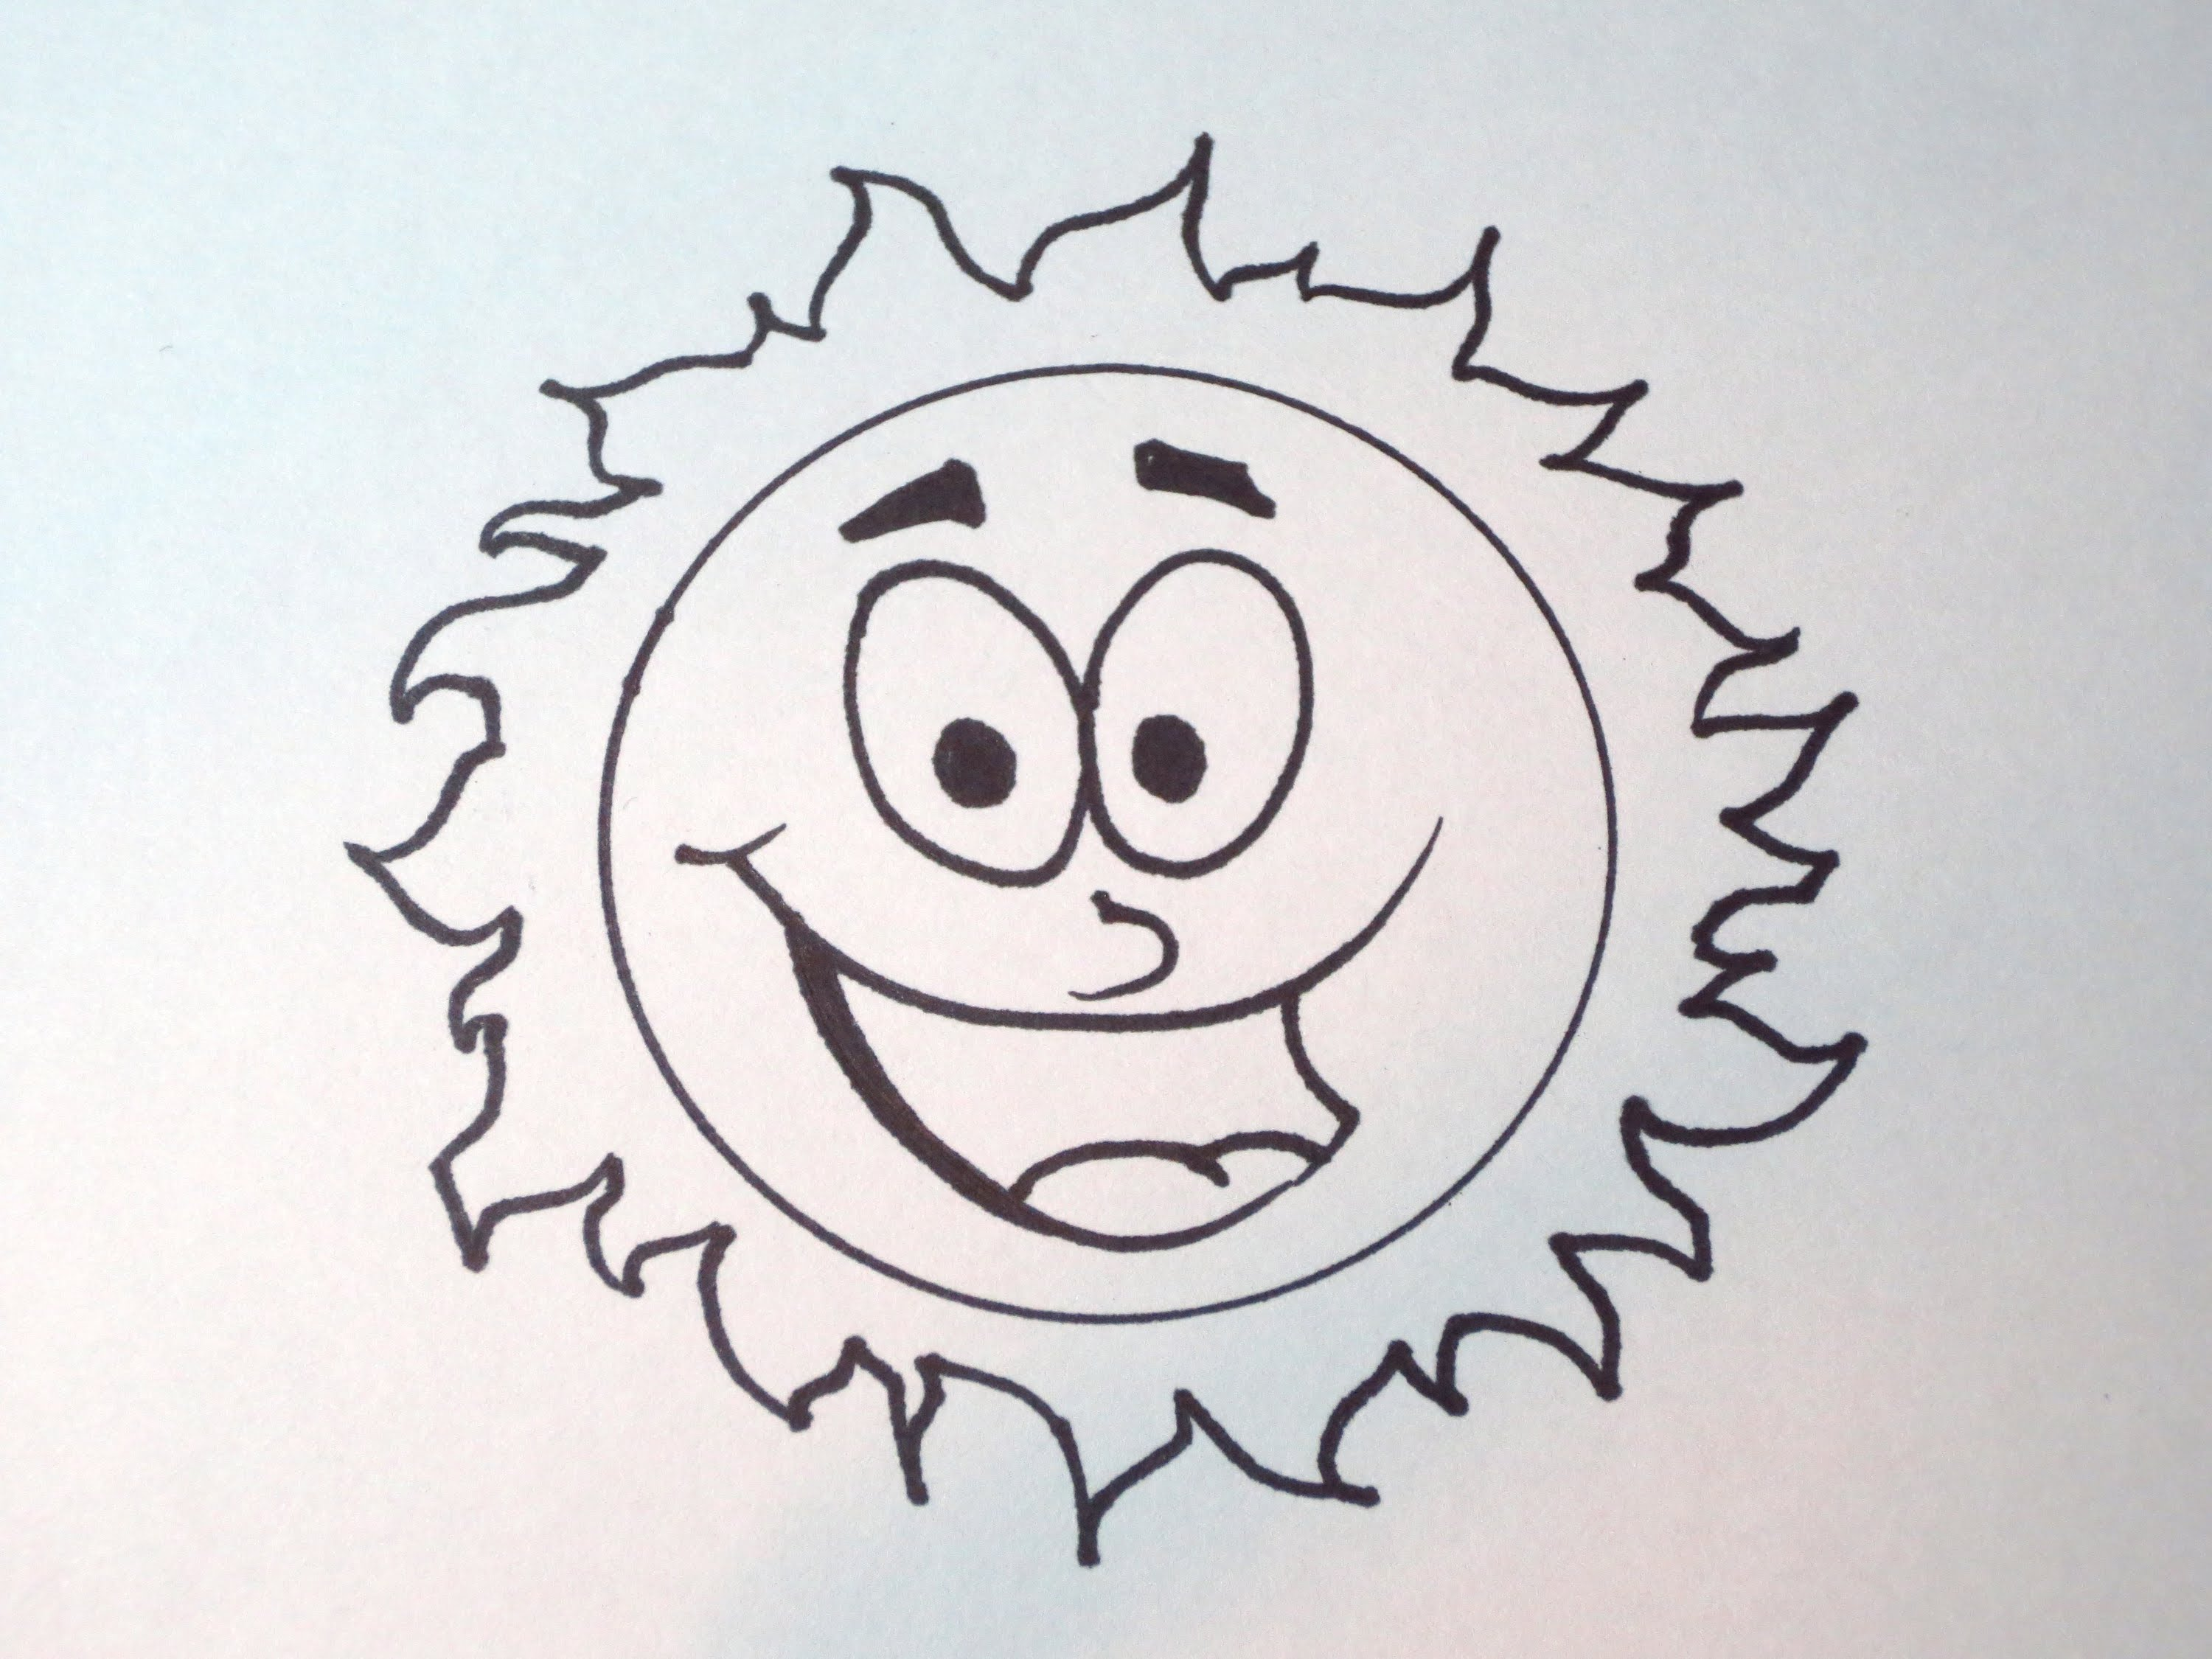 3000x2250 How To Draw A Simple Cartoon Sun